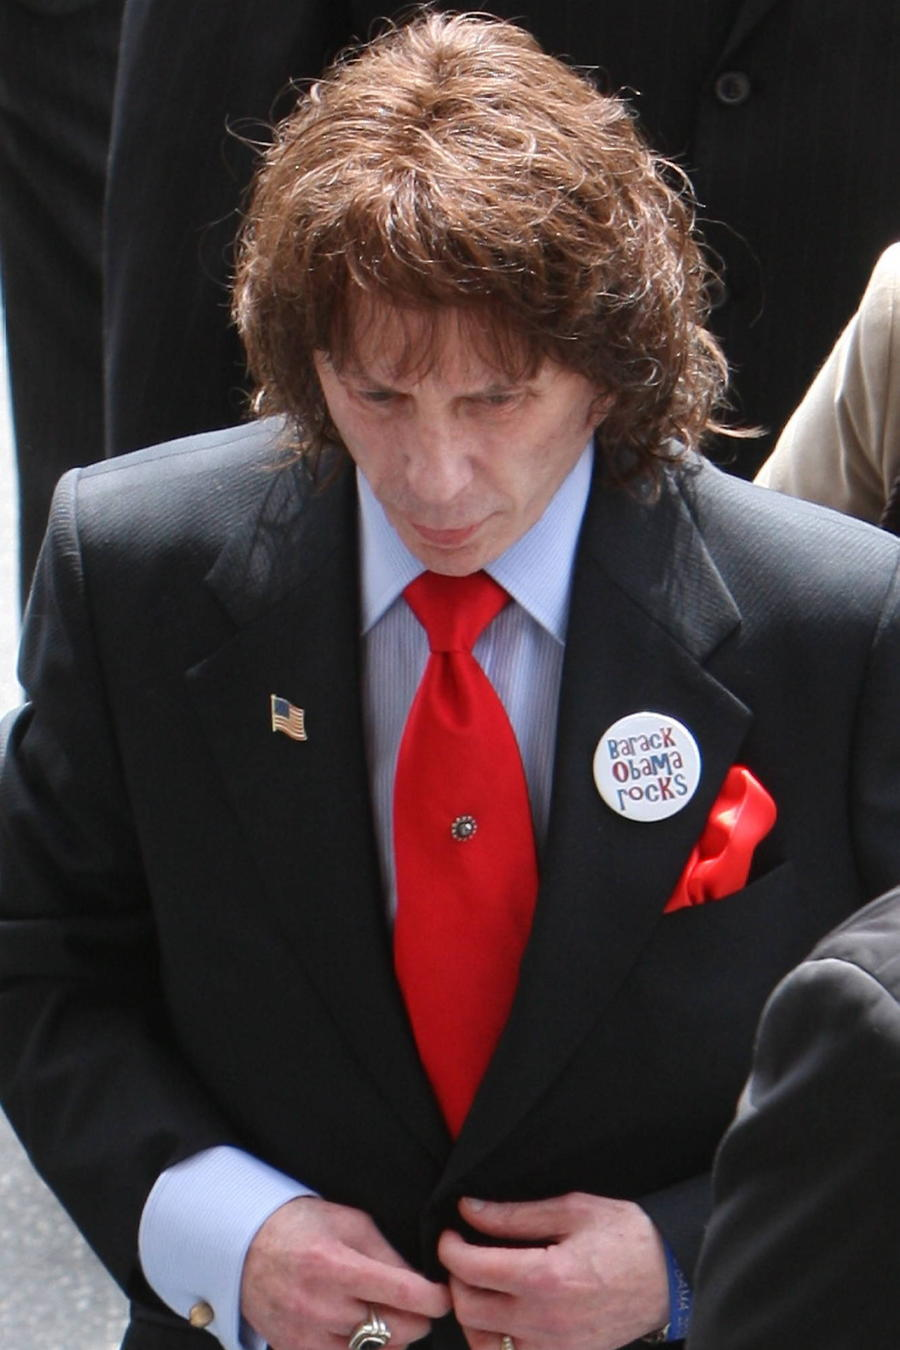 Phil Spector 'Files For Divorce'